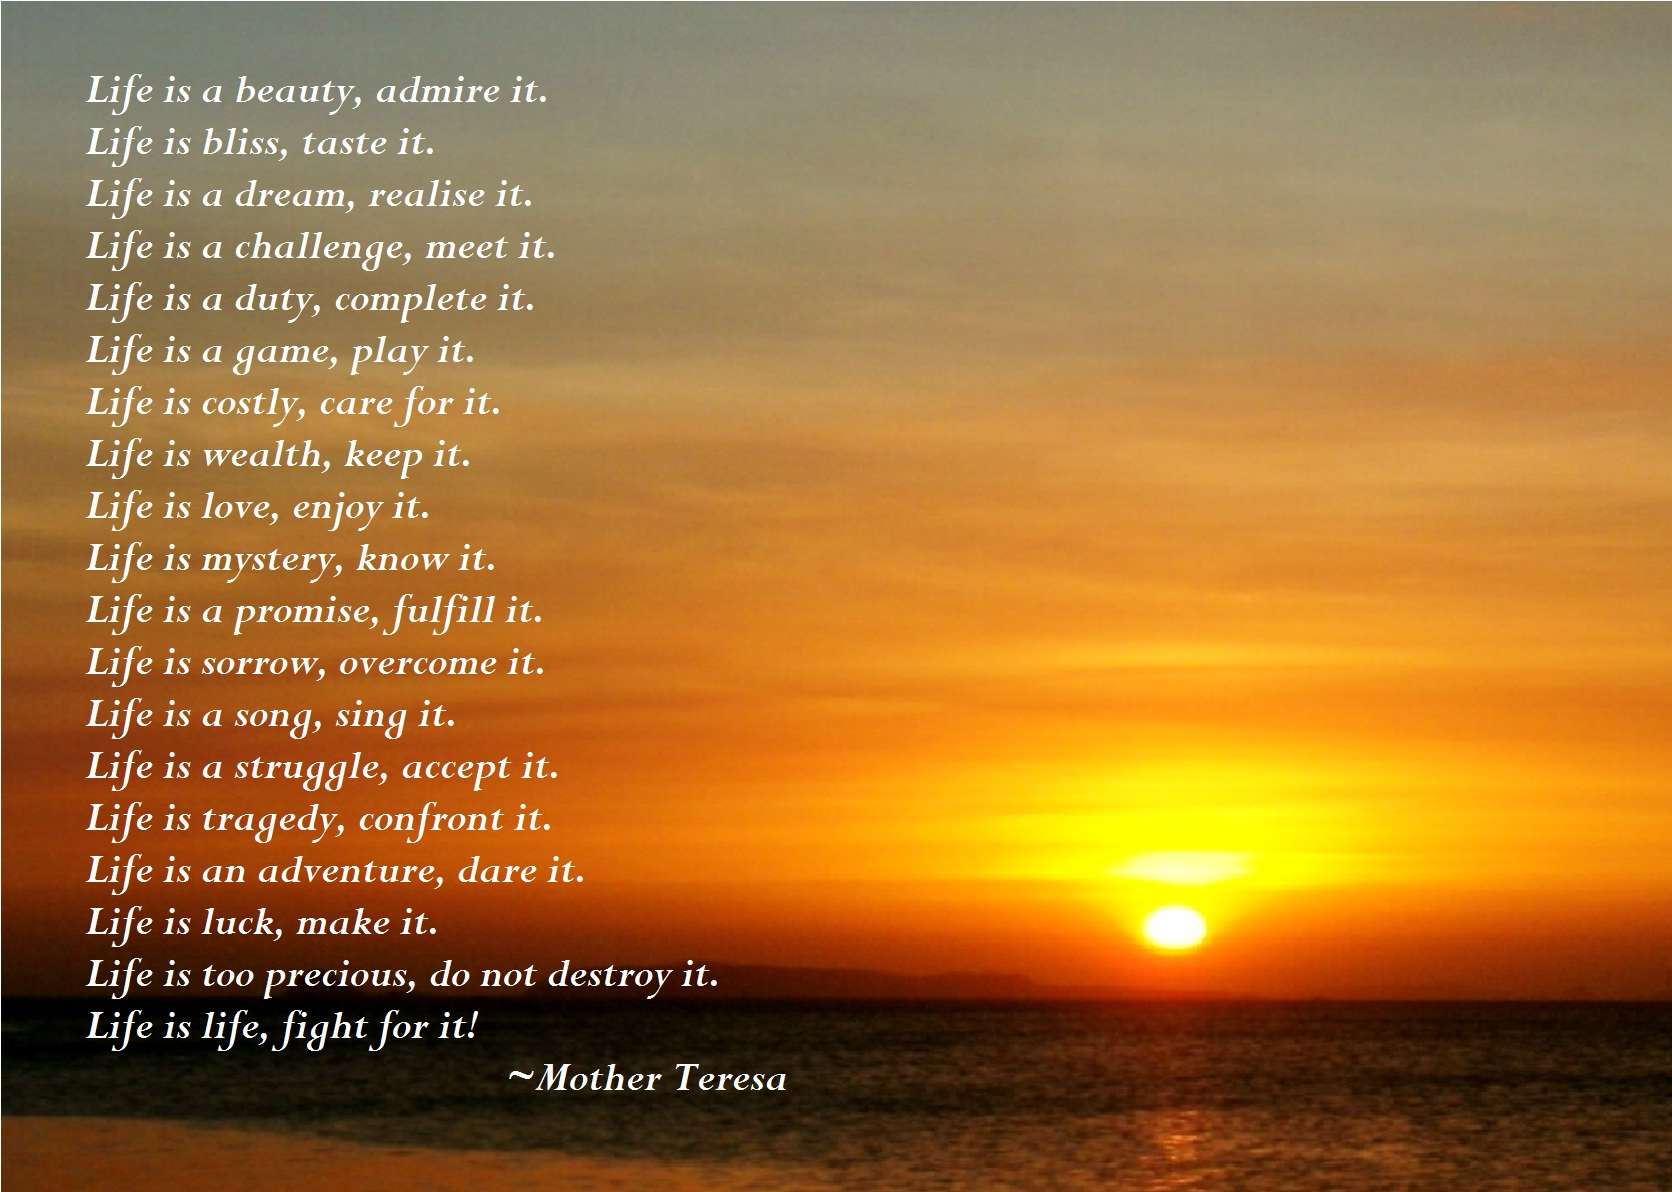 Life Quotes Mother Teresa Mother Teresa Poems